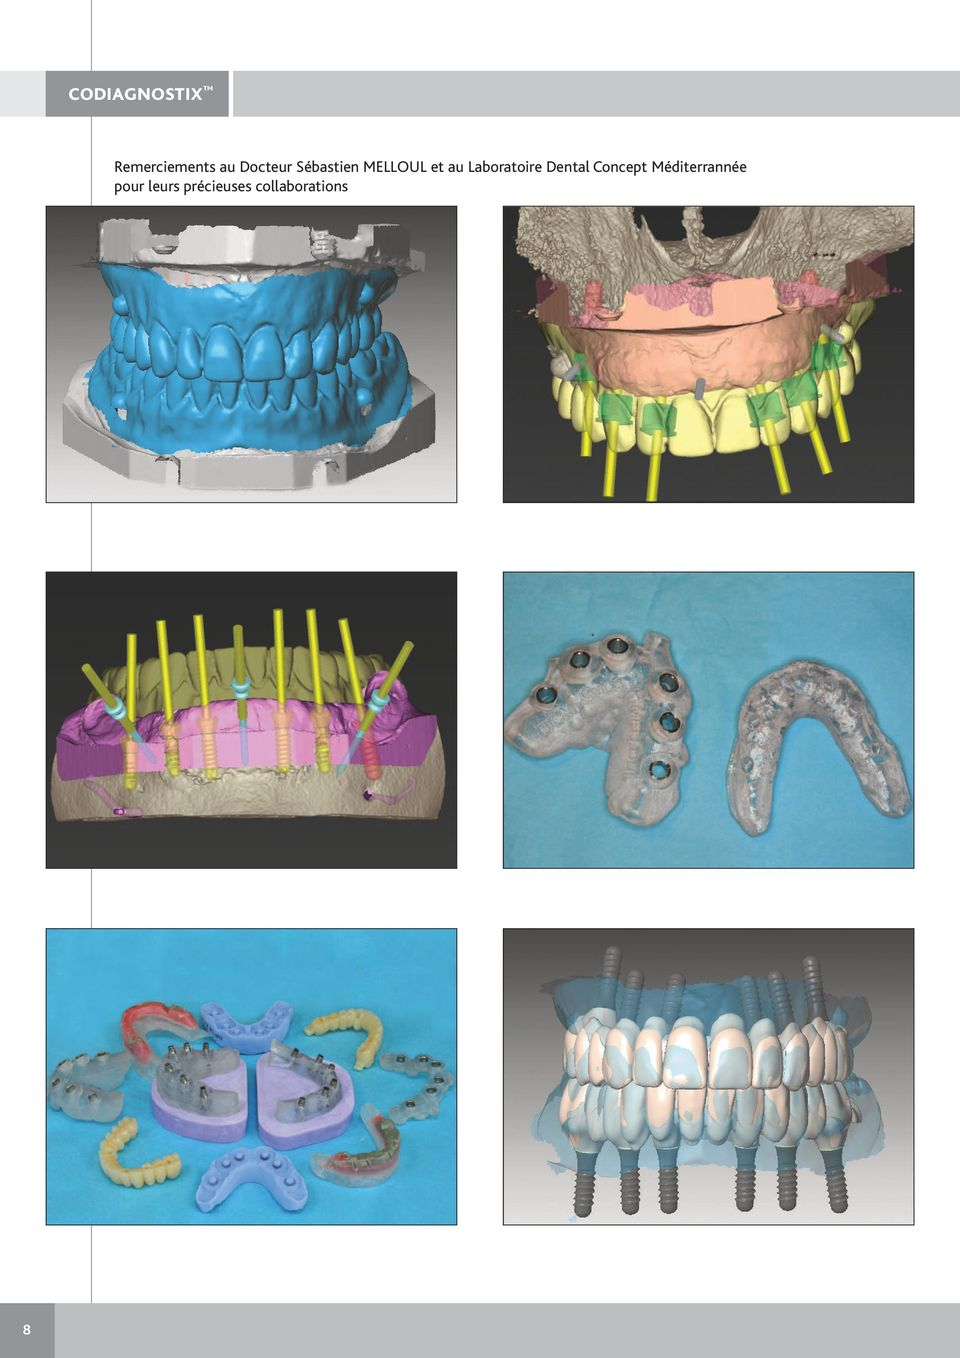 Laboratoire Dental Concept